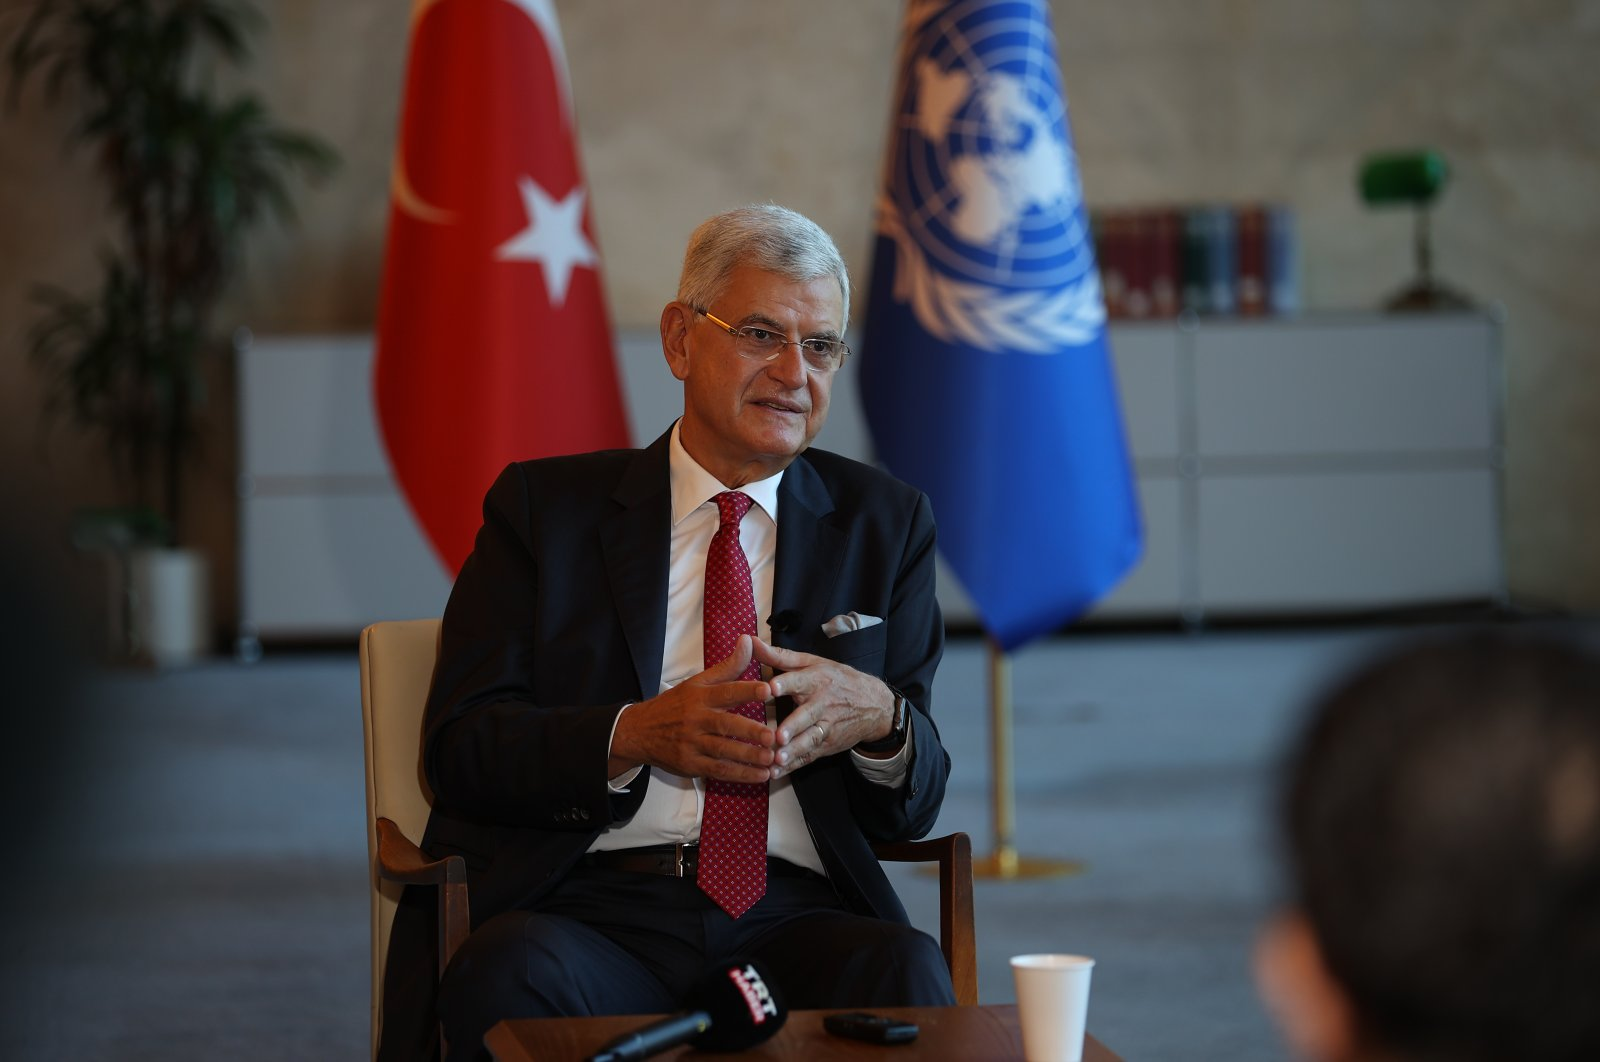 Volkan Bozkır, the president of the 75th U.N. General Assembly, speaks to reporters in New York, U.S., Sept. 14, 2021. (AA Photo)